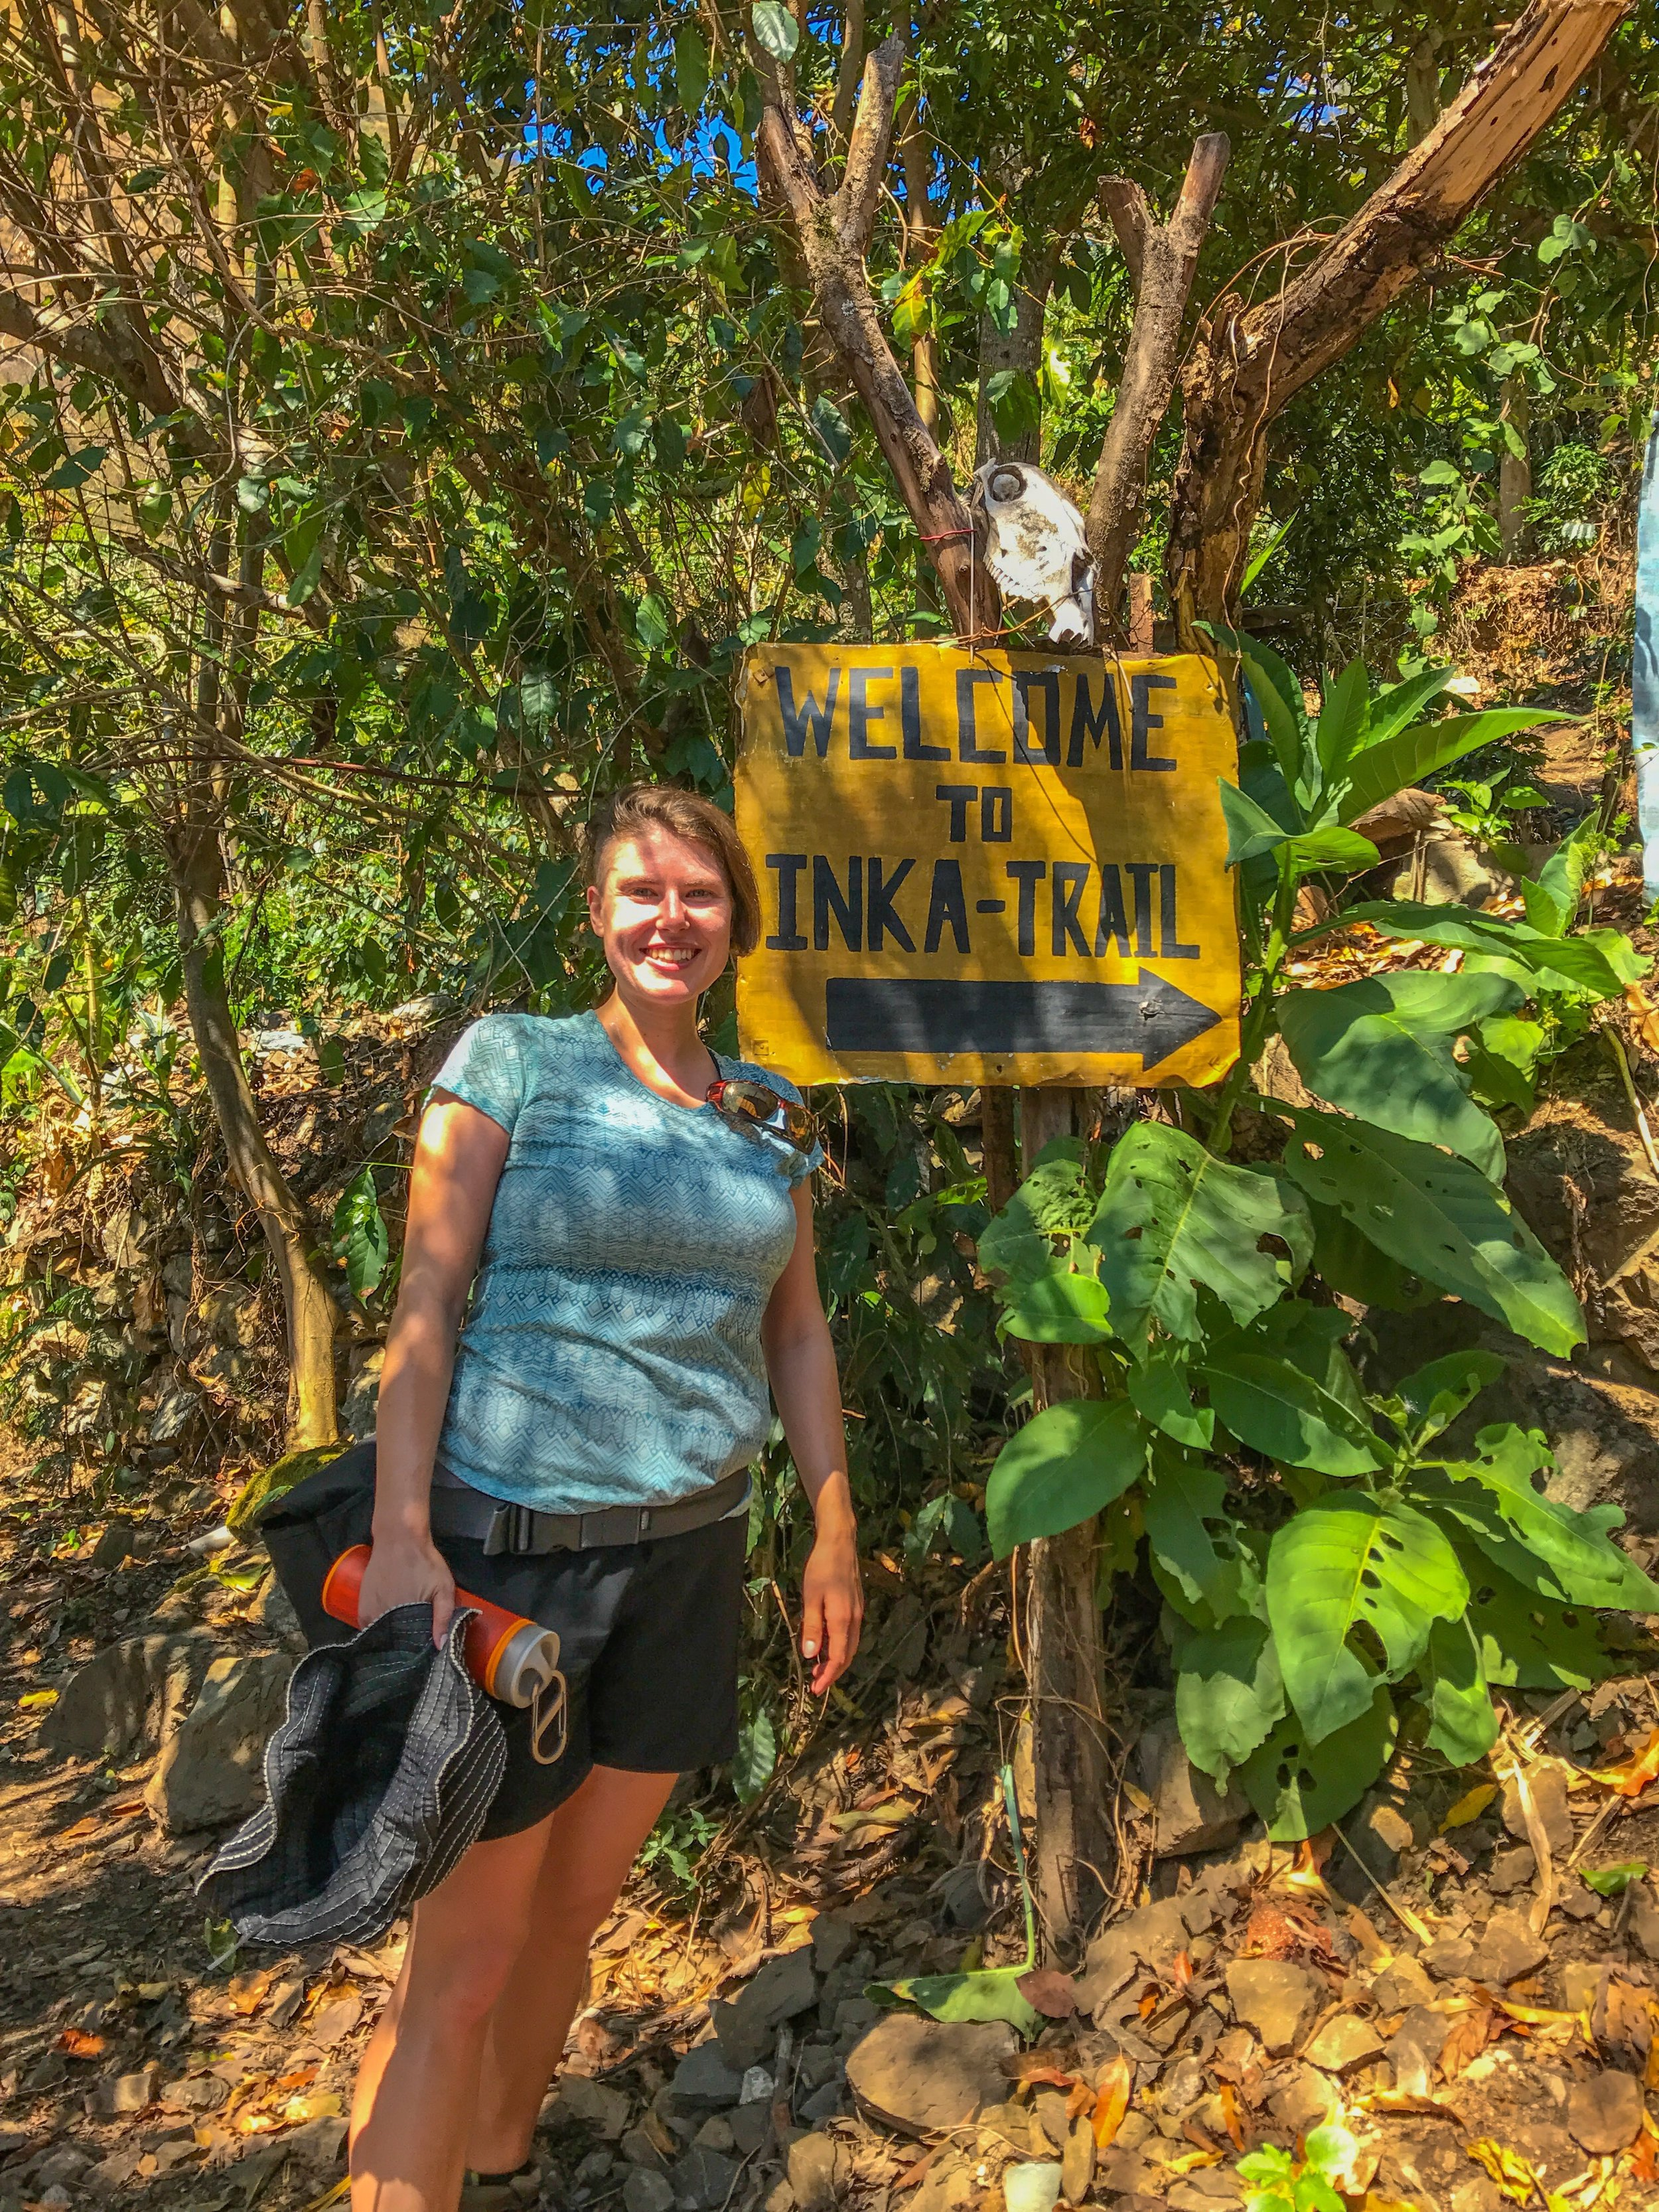 Joined part of the original Inka Trail during our trip